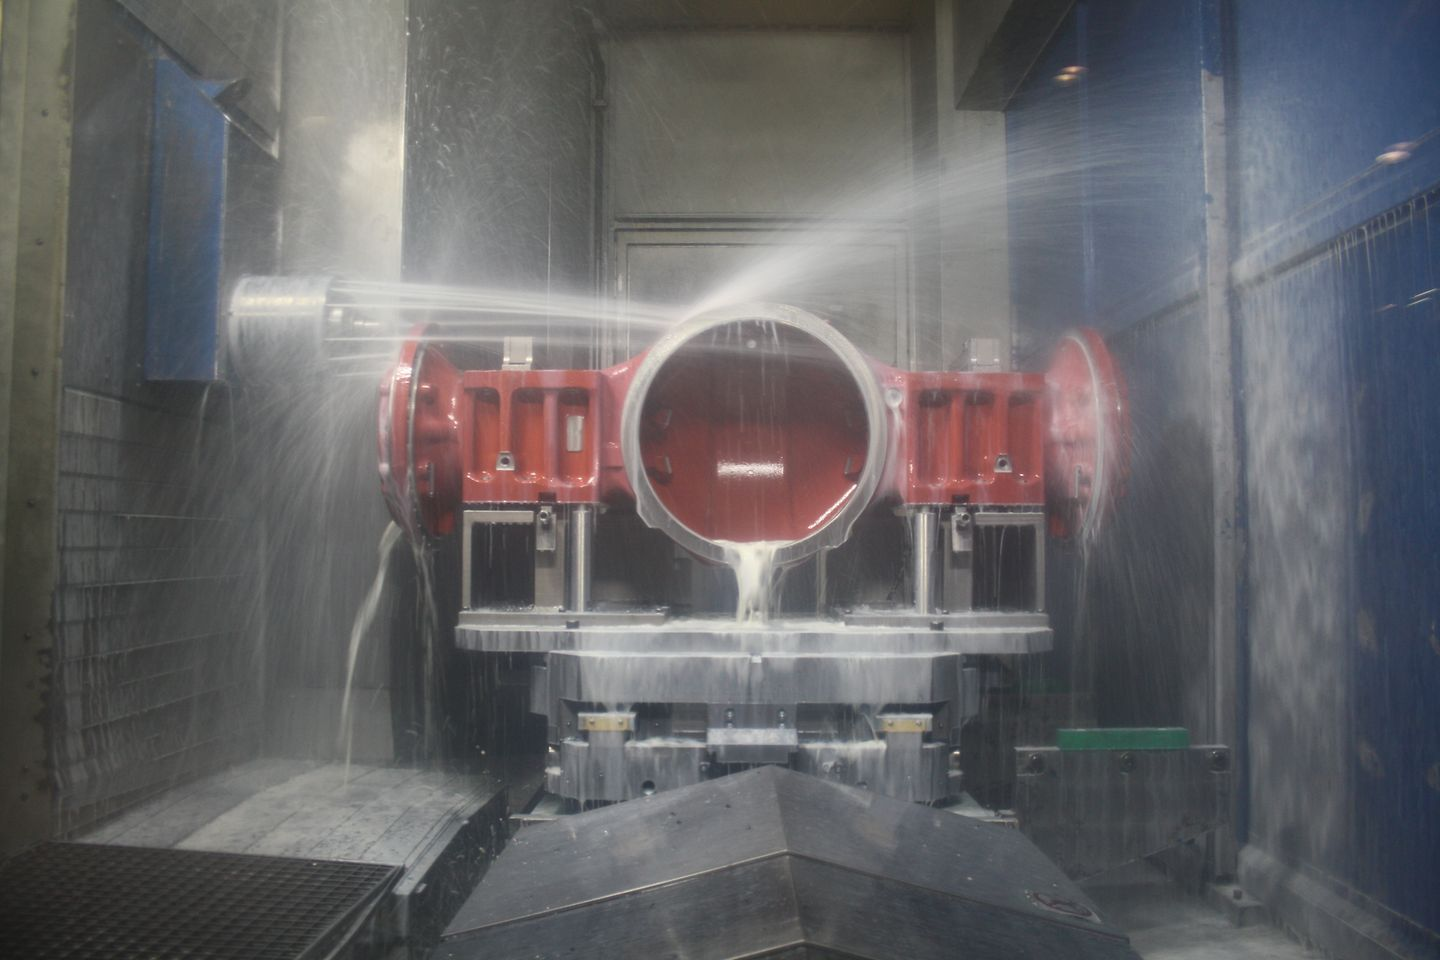 Fully automatic milling, cutting and grinding machines shape the massive axle blanks in completely enclosed machining units